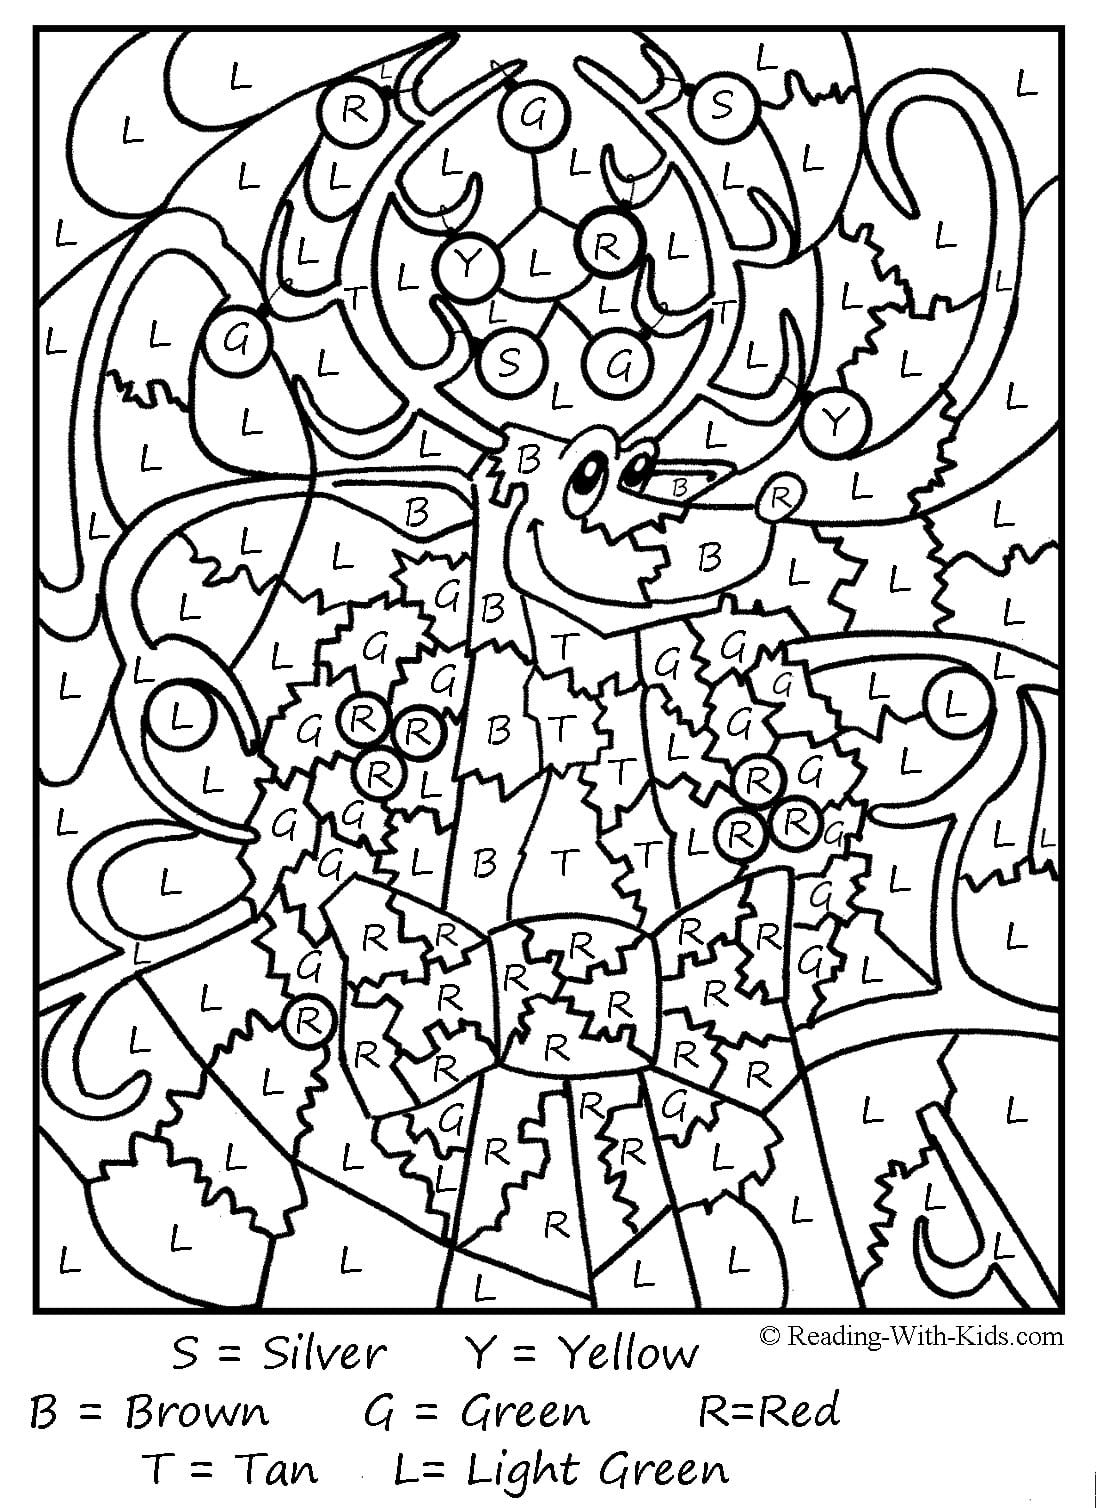 Christmas Coloring Pages To Print Free Printable 1080 960 High